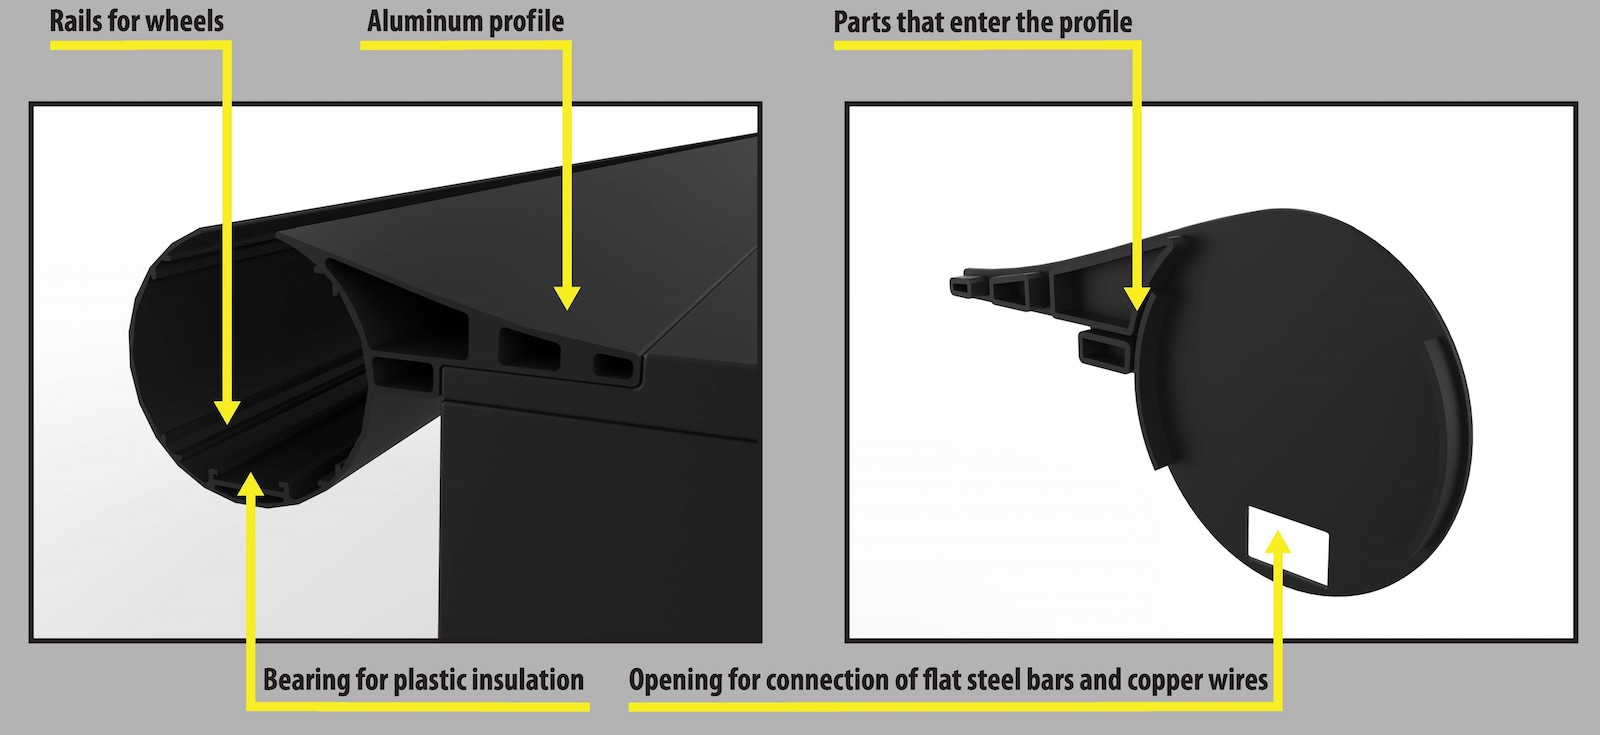 Figure 2. The aluminum extruded profiles incorporate a variety of features into their design.